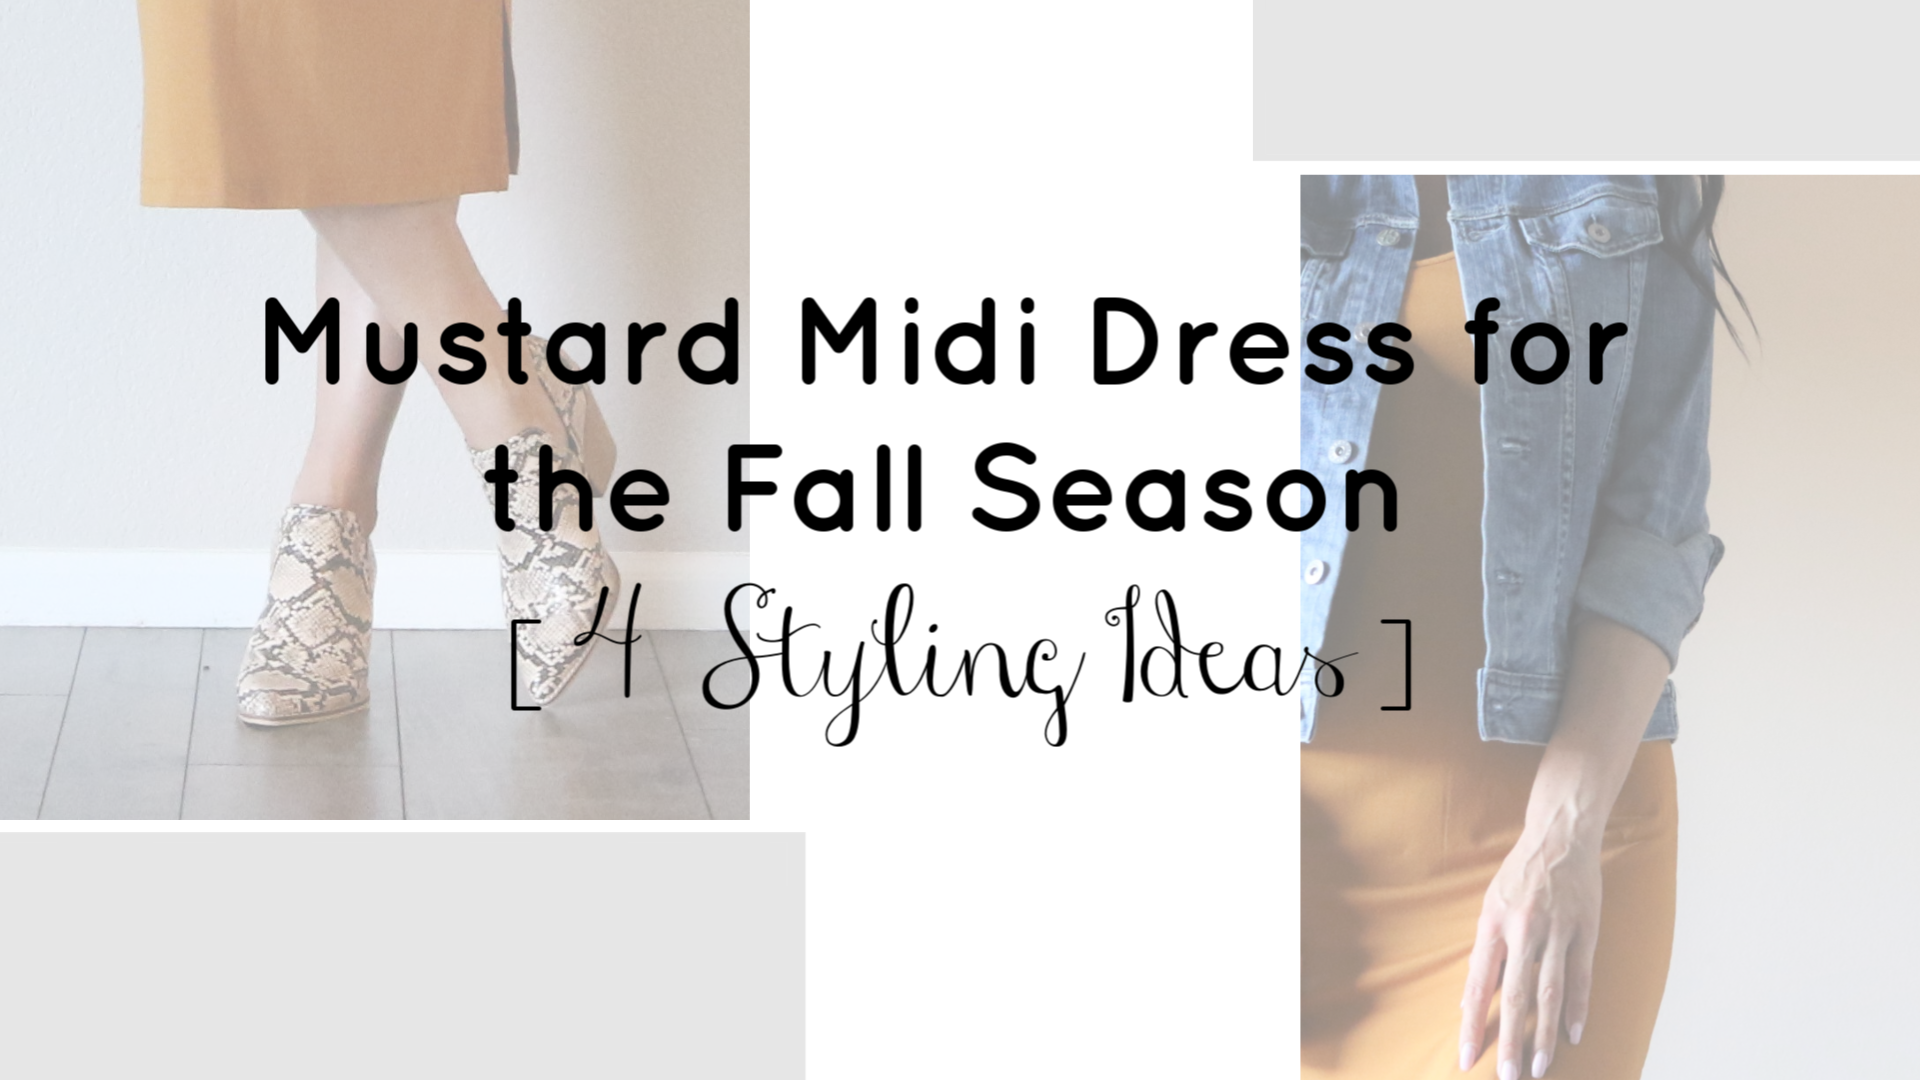 Mustard Midi Dress for the Fall Season | Teacherfashionista | Jules